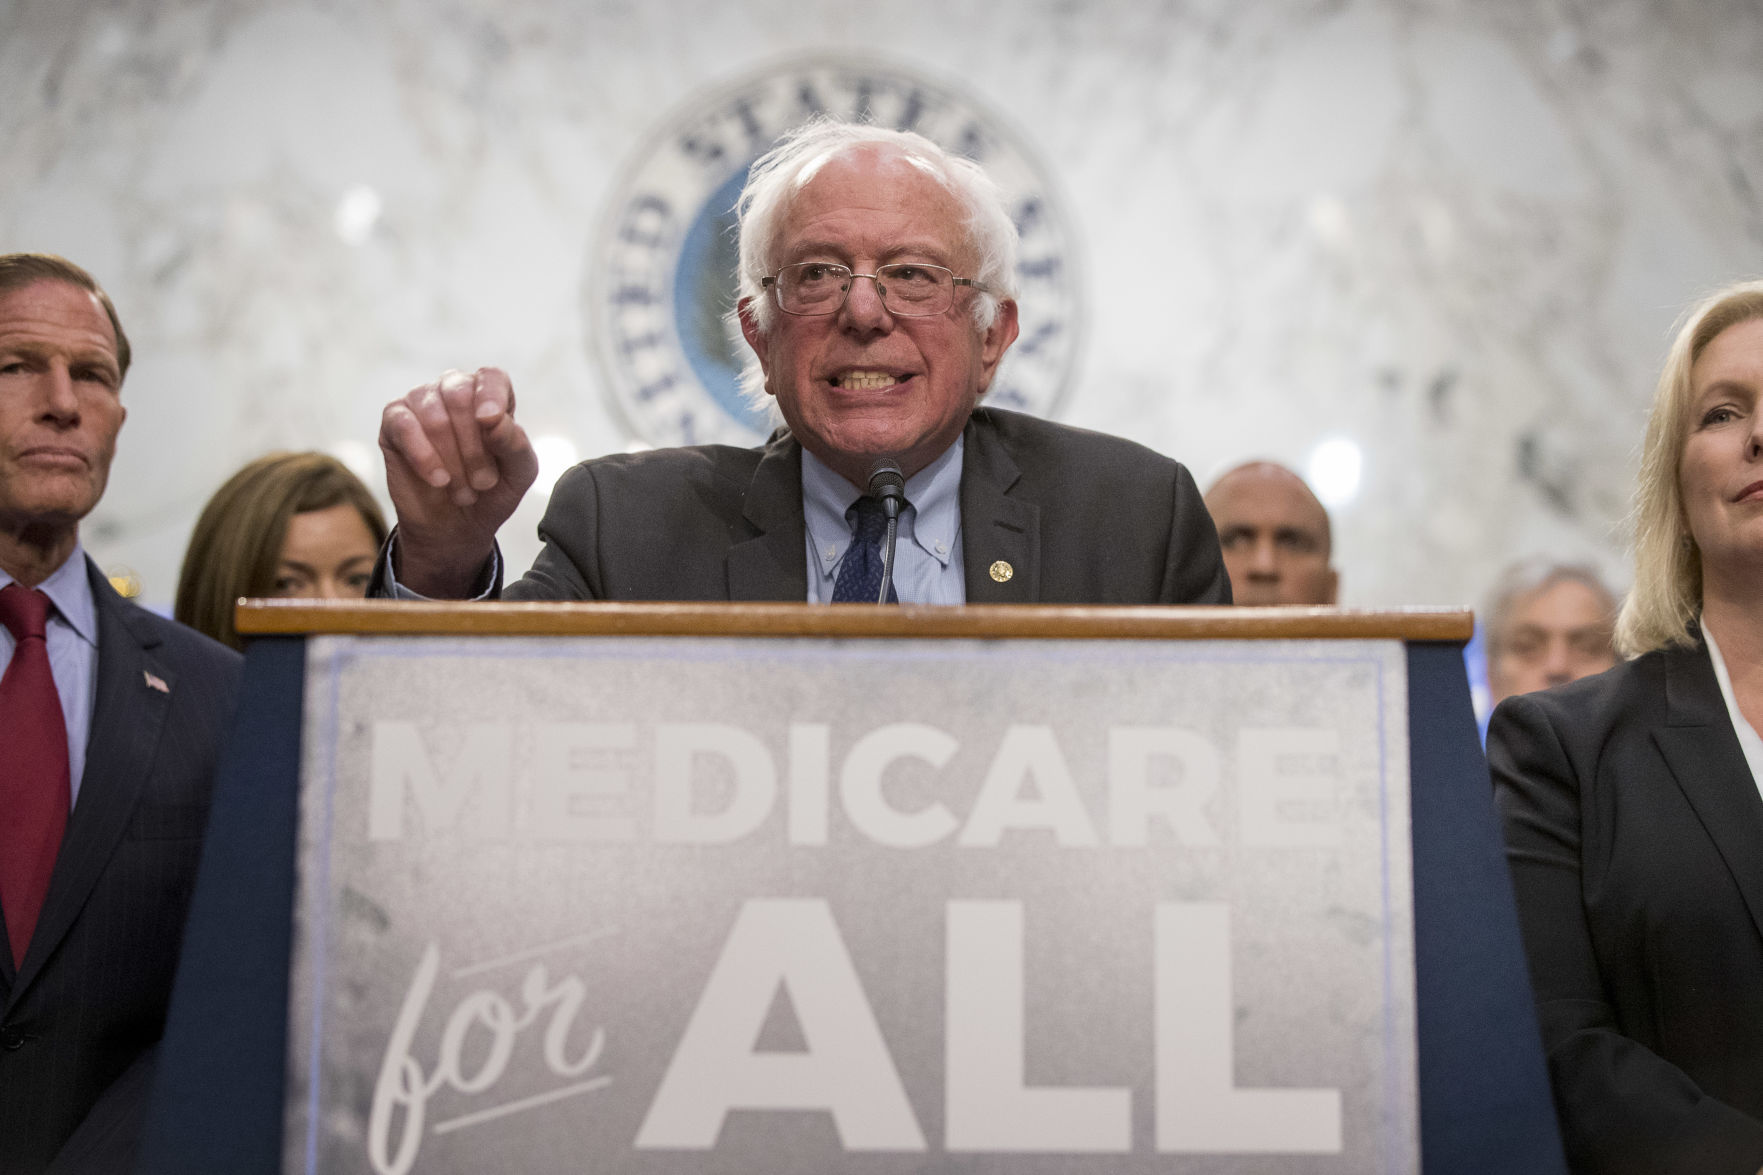 Majority of Americans, especially Democrats, support single-payer health care